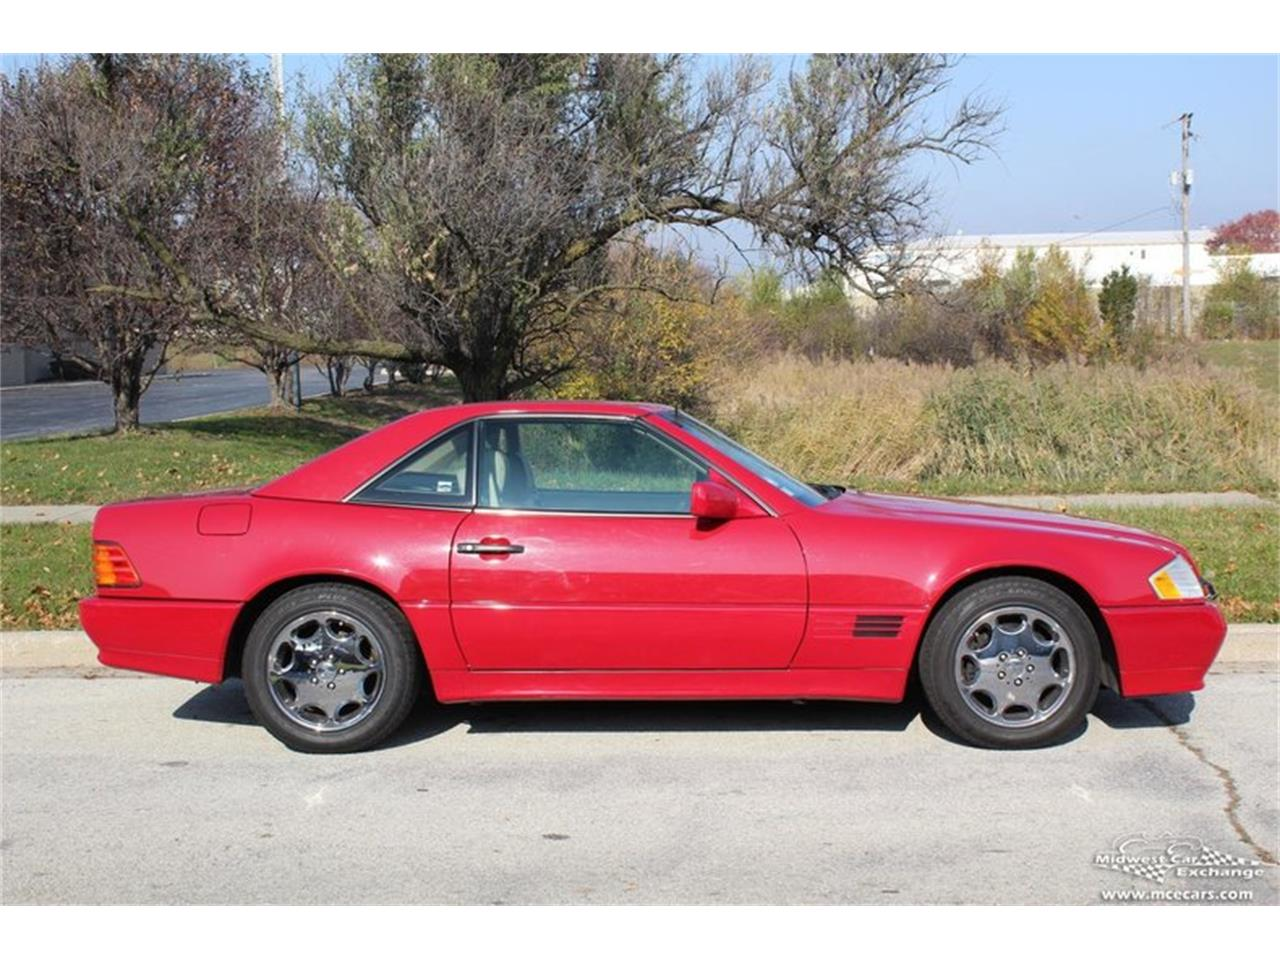 Large Picture of '95 SL500 located in Alsip Illinois - $14,900.00 Offered by Midwest Car Exchange - M42A